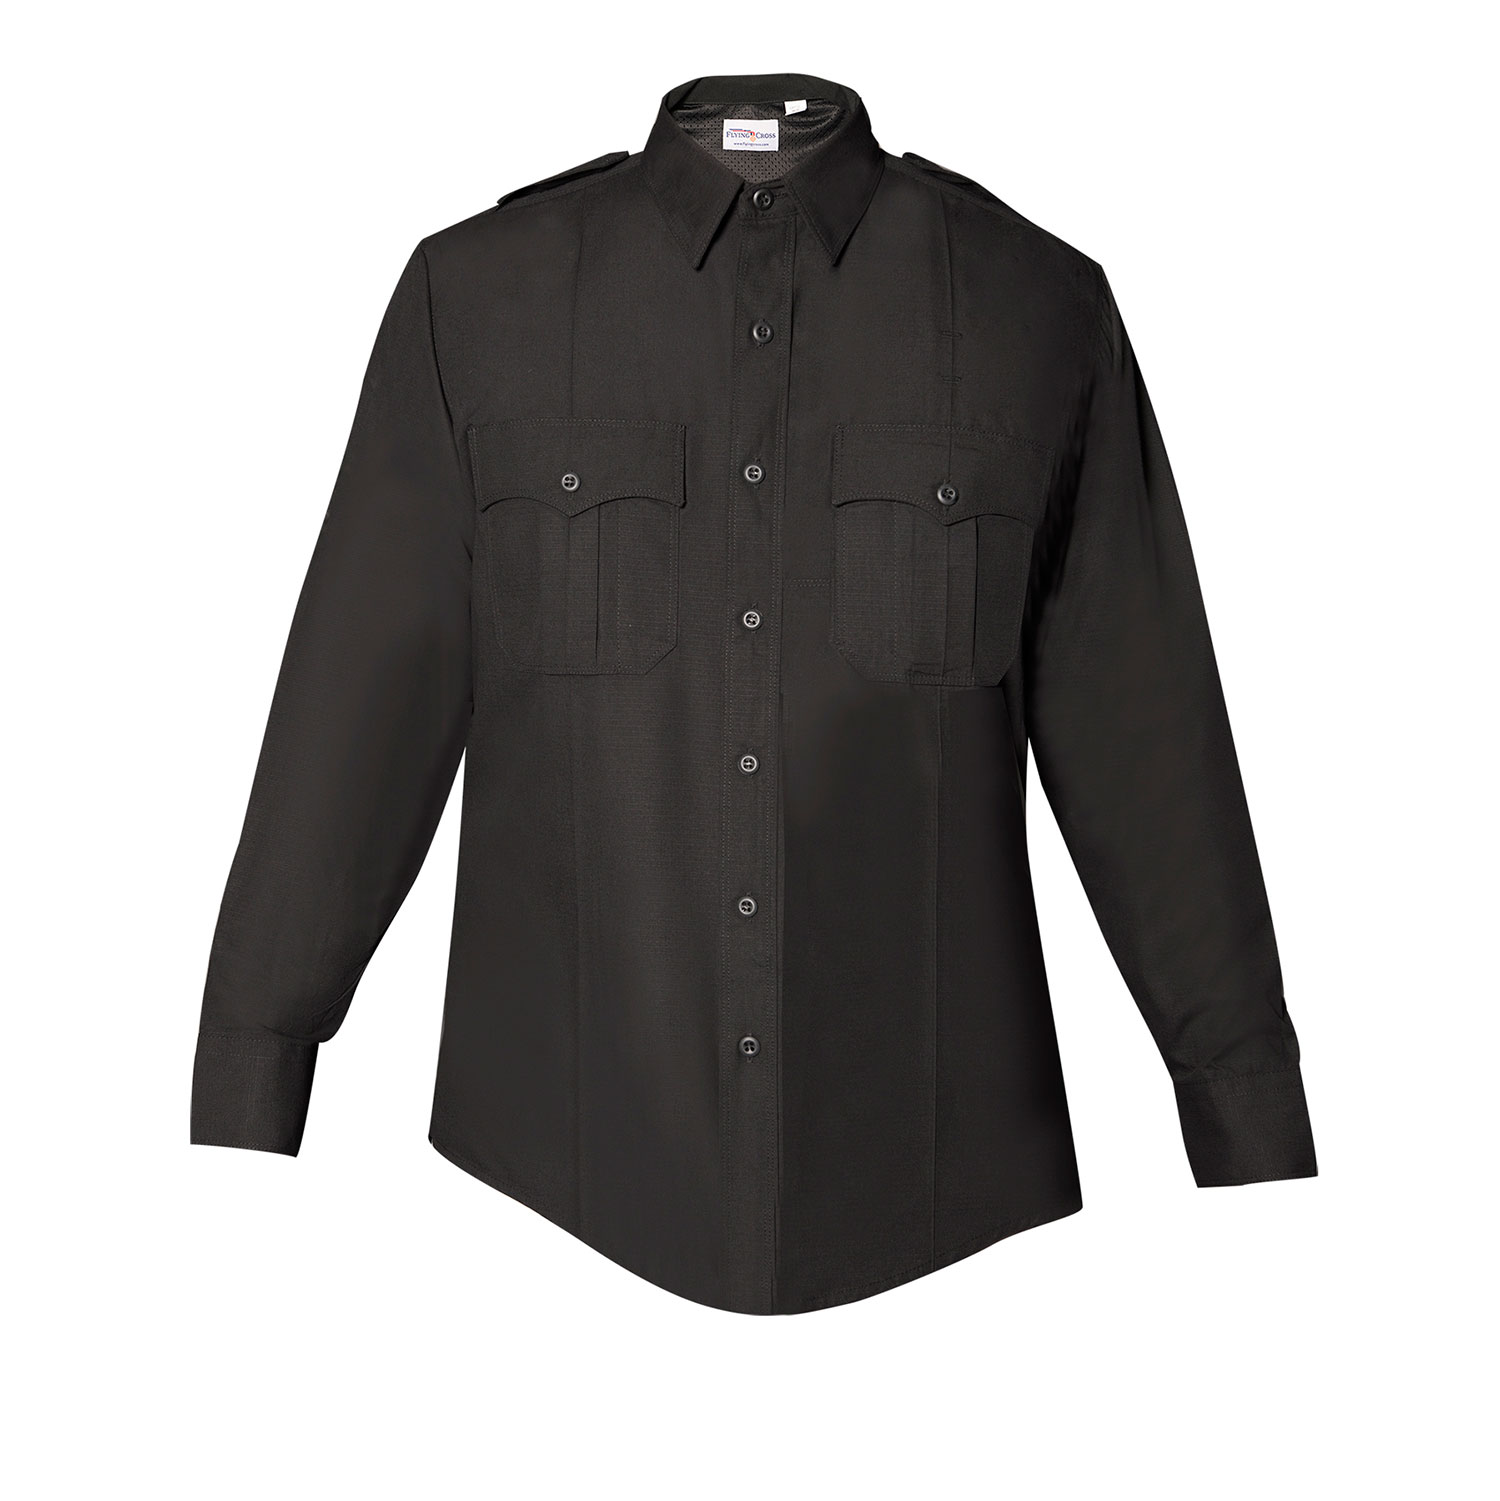 Cross Fx Class A Style Long Sleeve Shirt by Flying Cross